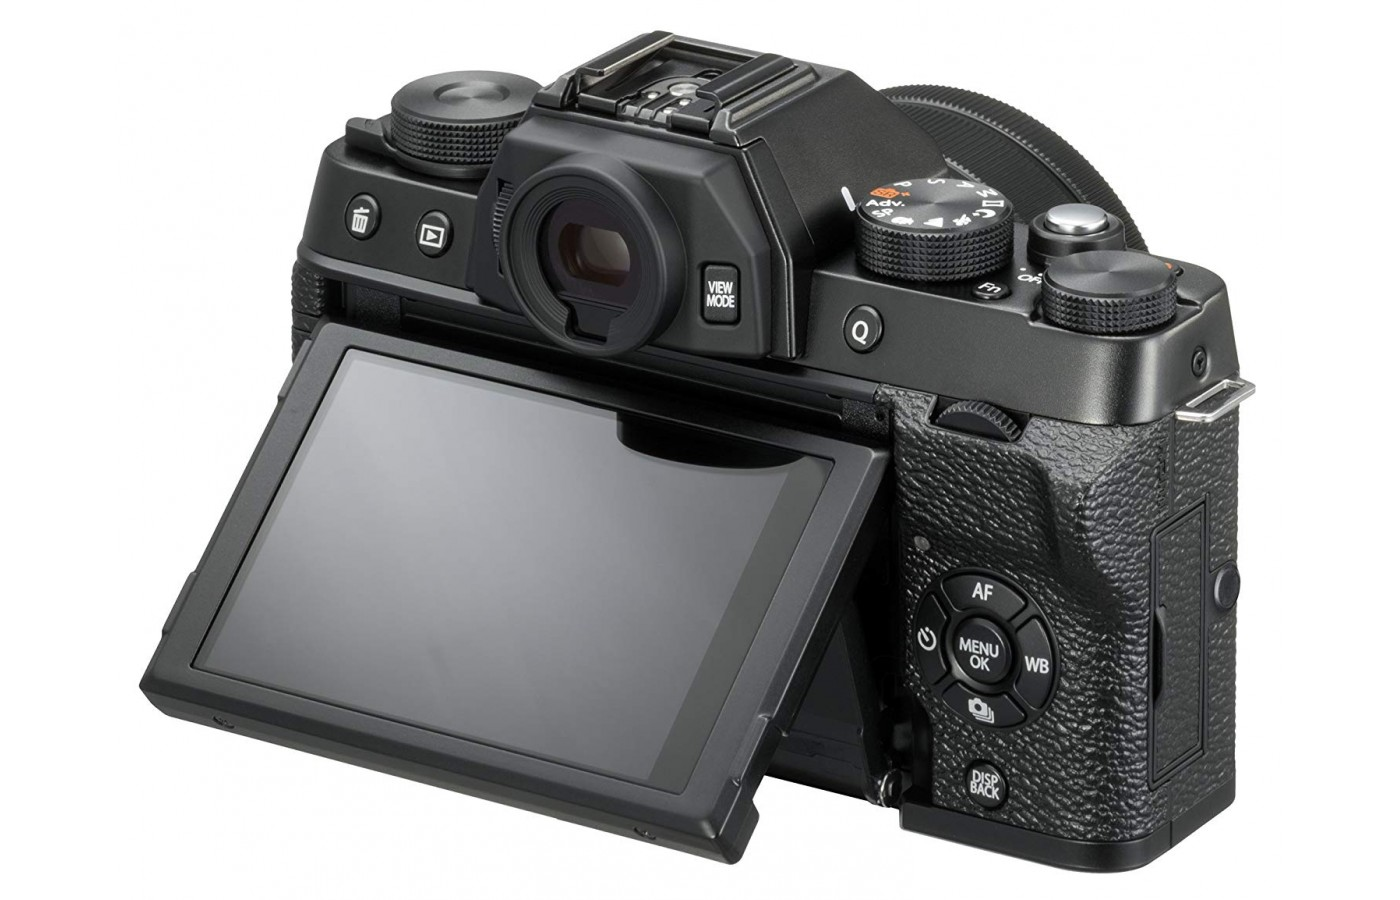 This is one of the few mirrorless cameras with a viewfinder.